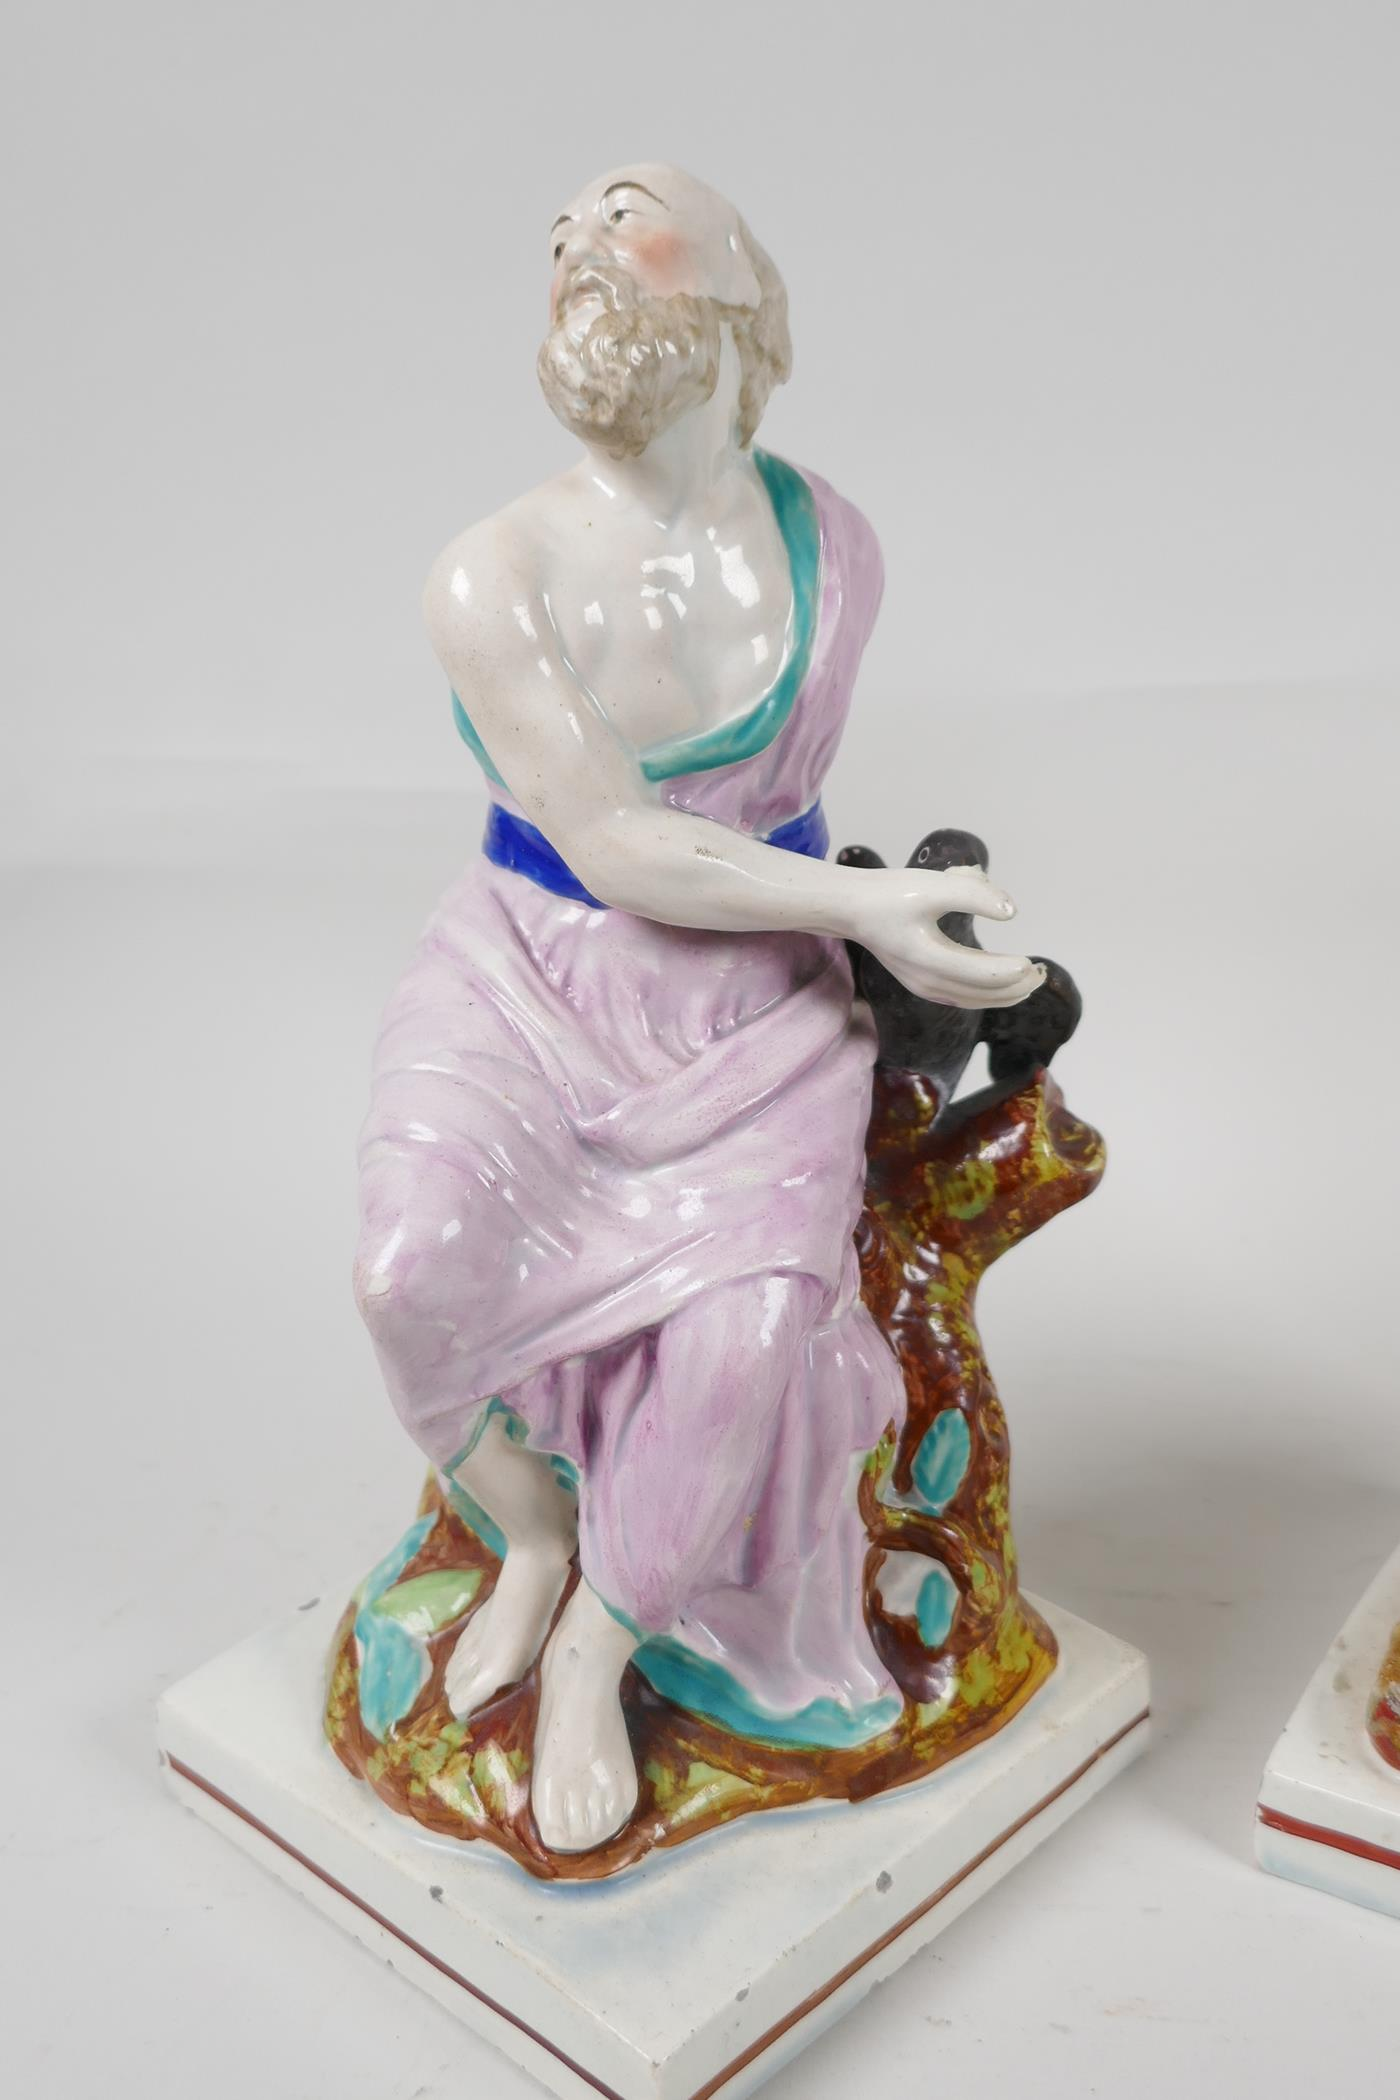 """A pair of C19th Staffordshire pottery figures, Elijah and the Widow, 9"""" high - Image 2 of 5"""